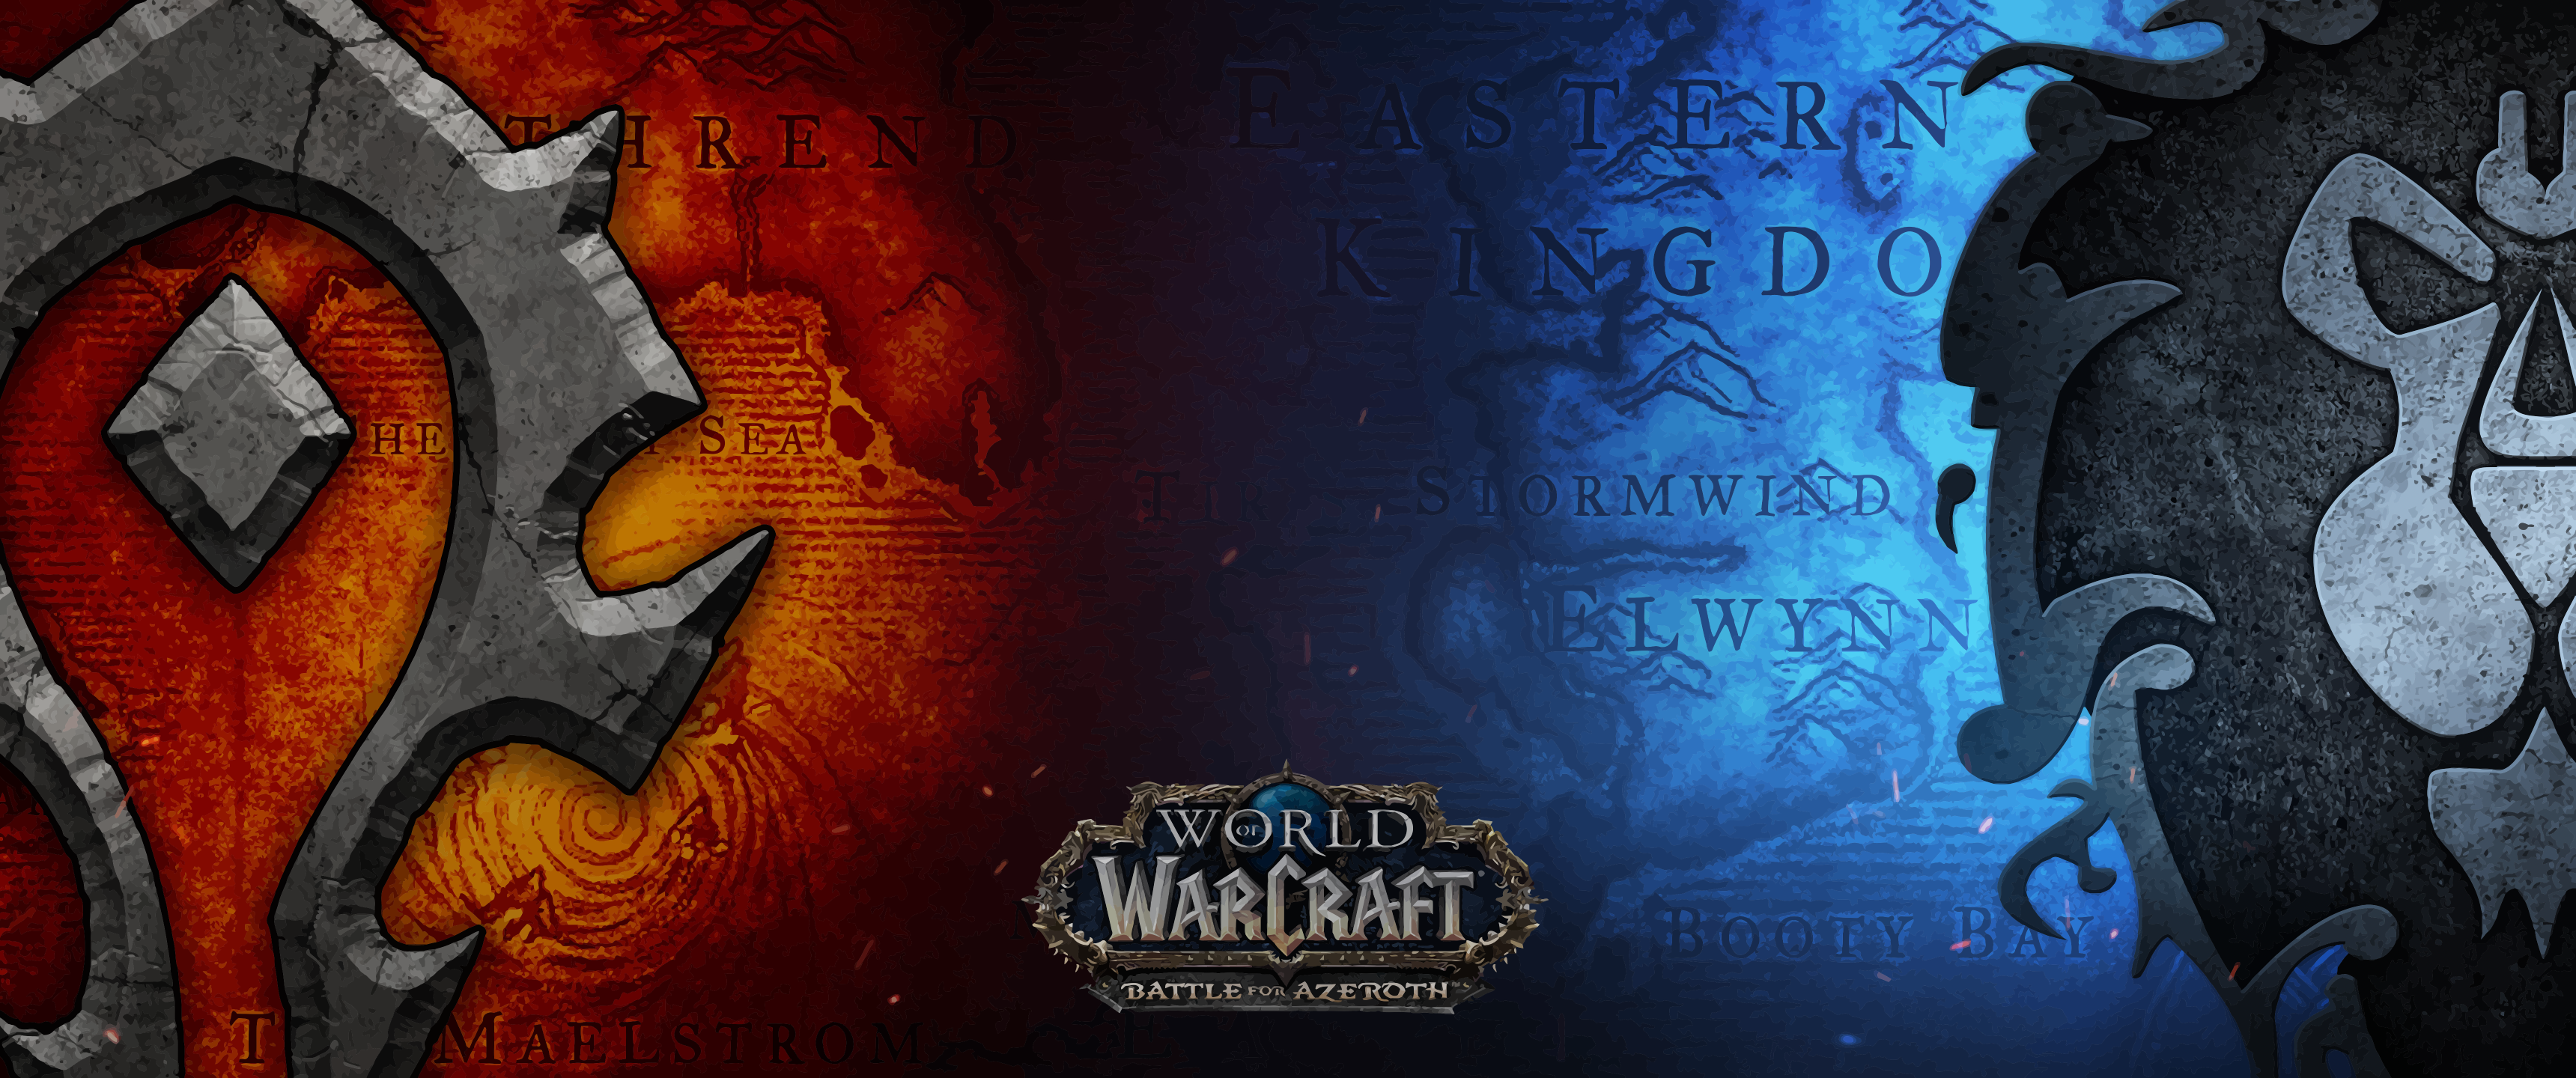 Battle For Azeroth 3440x1440 Vectorized By Mtheis1987 On